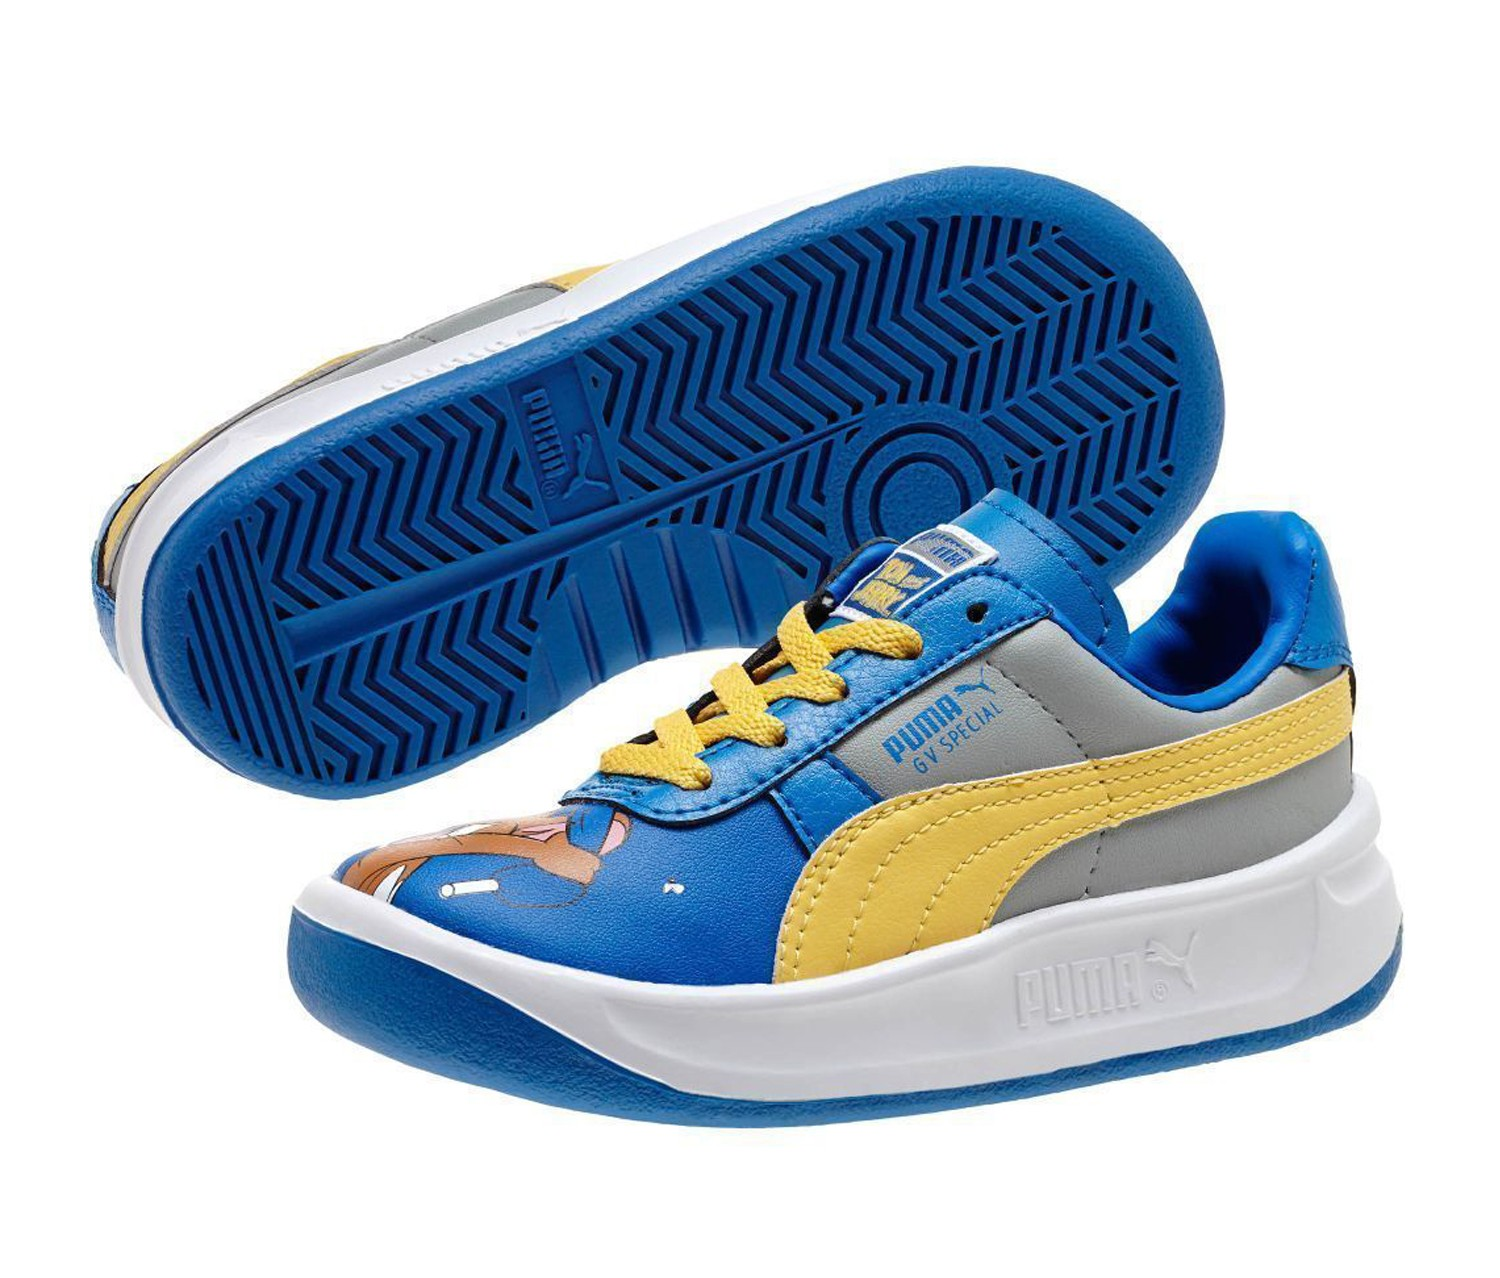 Shop Puma Baby Boy's Puma GV Special Tom & Jerry, Blue for